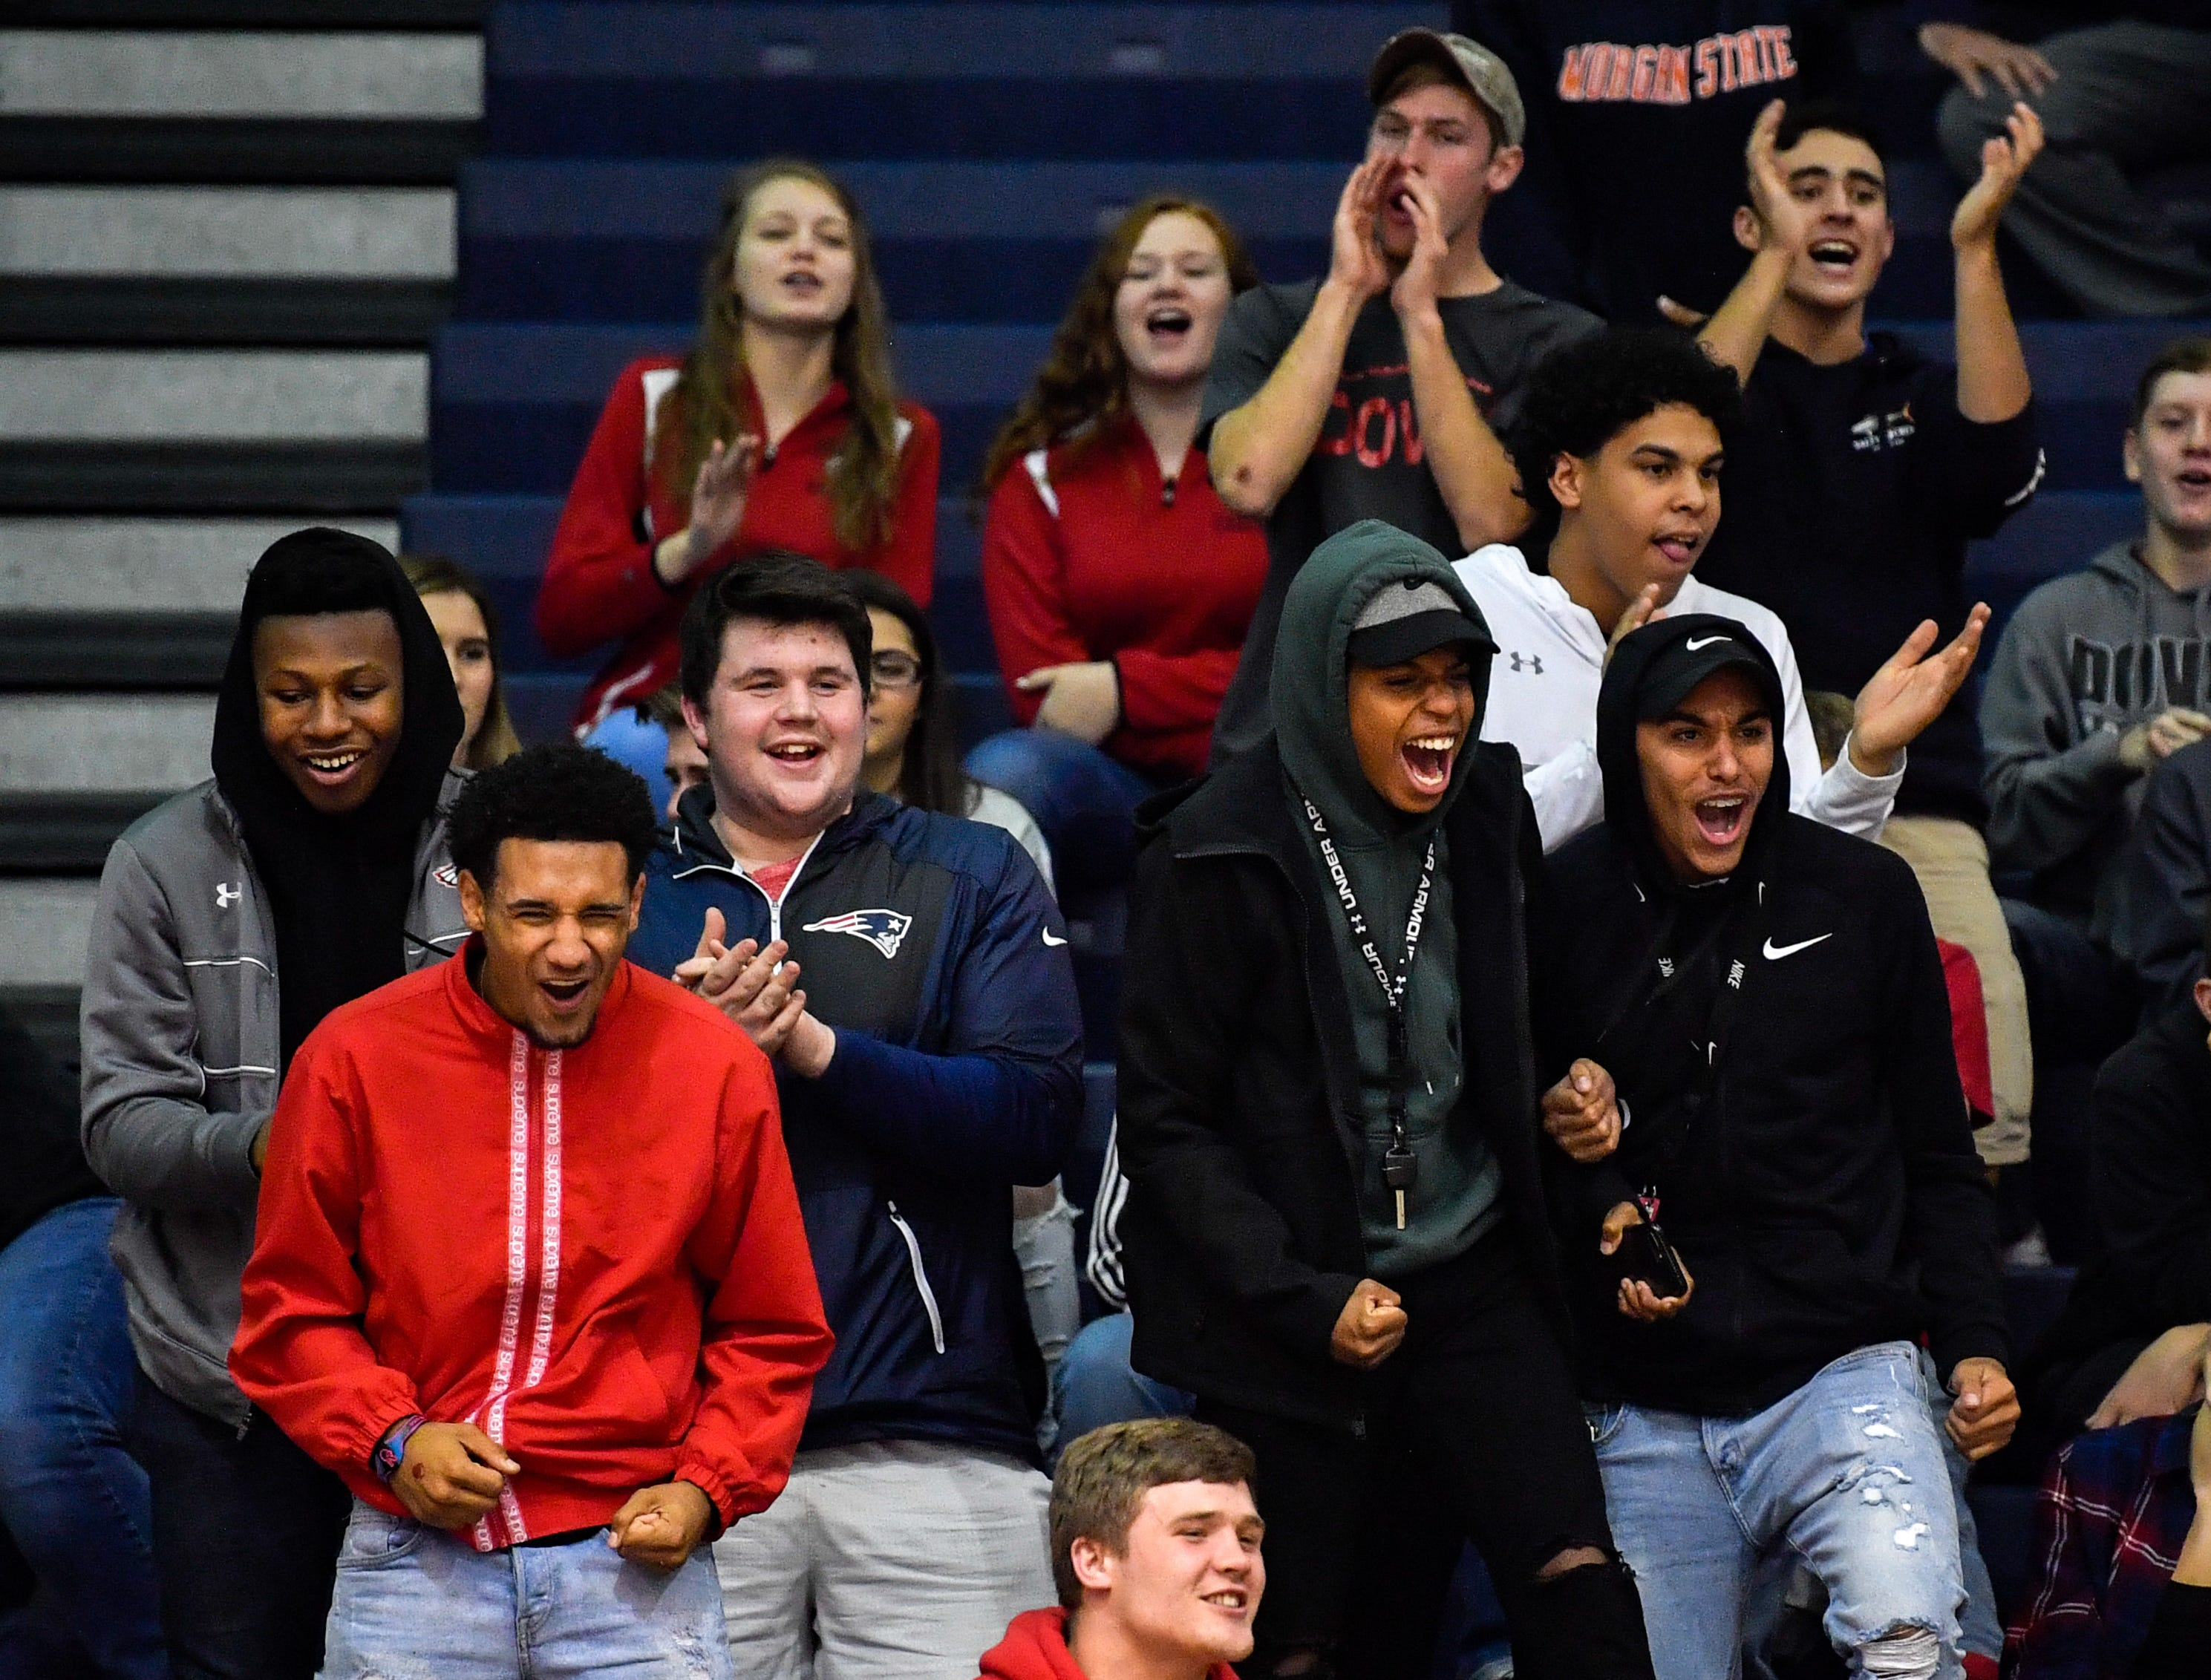 Dover has their own cheering section during the YAIAA league volleyball tournament semifinals between West York and Dover, Tuesday, October 23, 2018. The Bulldogs defeated the Eagles 3-1.